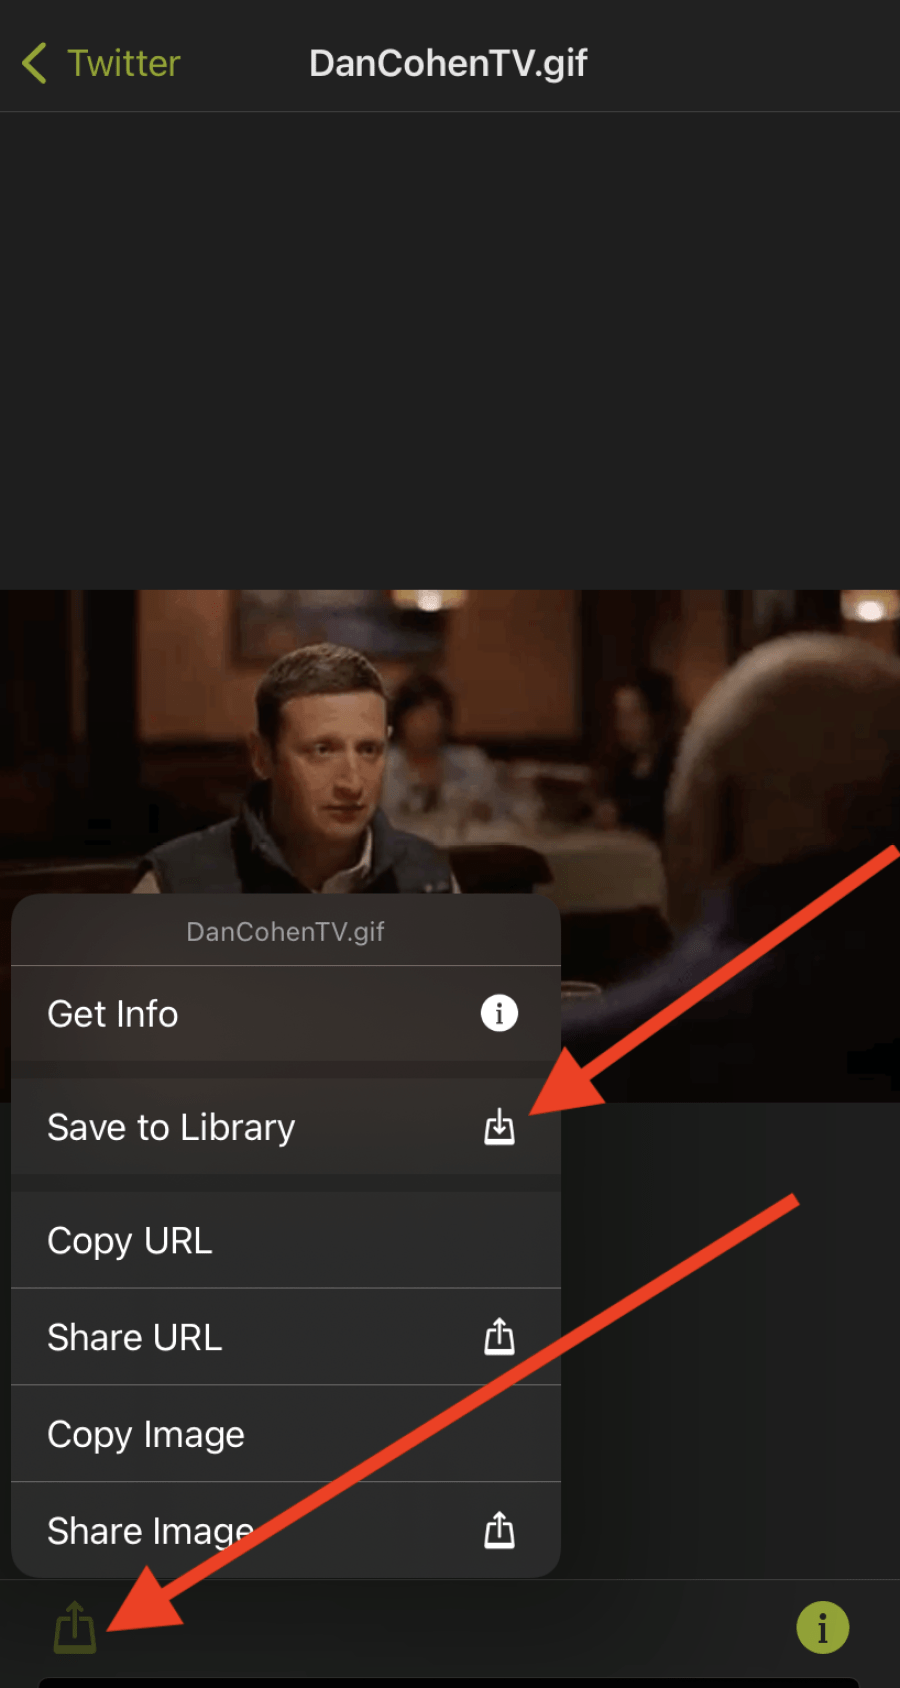 The lower arrow shows the first button you hit. The top arrow shows the button you hit to save the GIF.